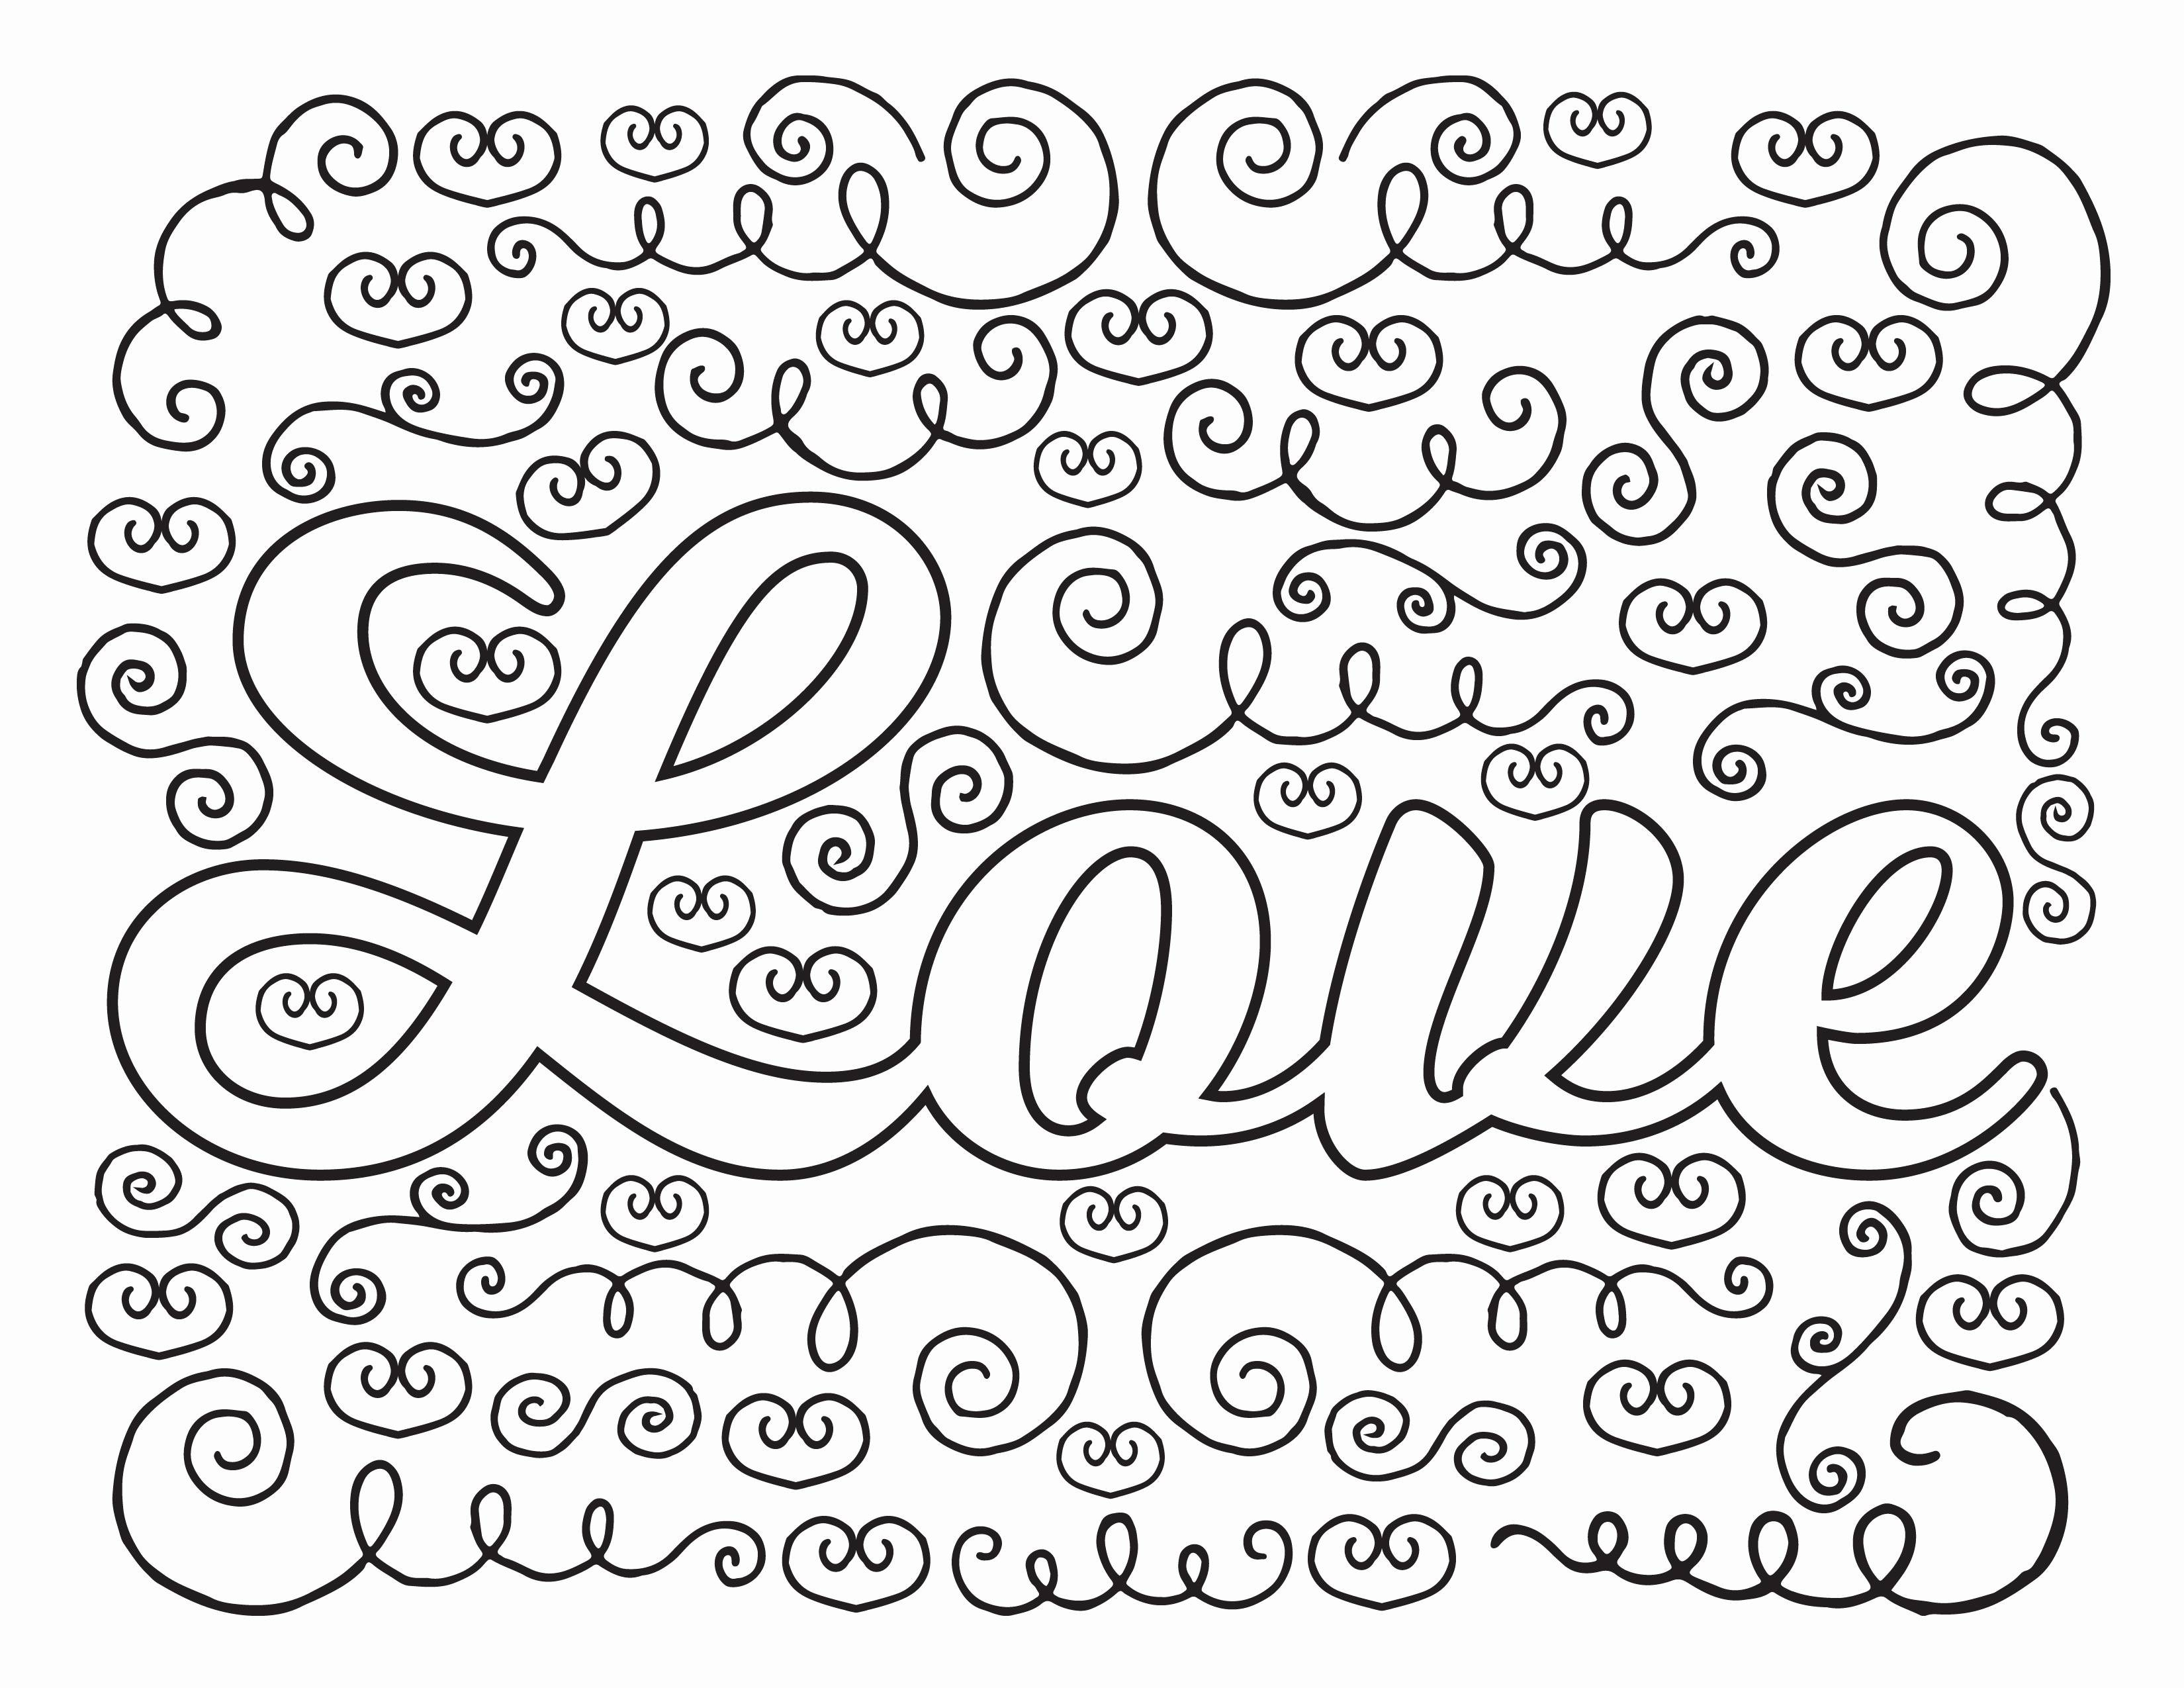 Cuss Words Coloring Pages  Collection 16d - To print for your project